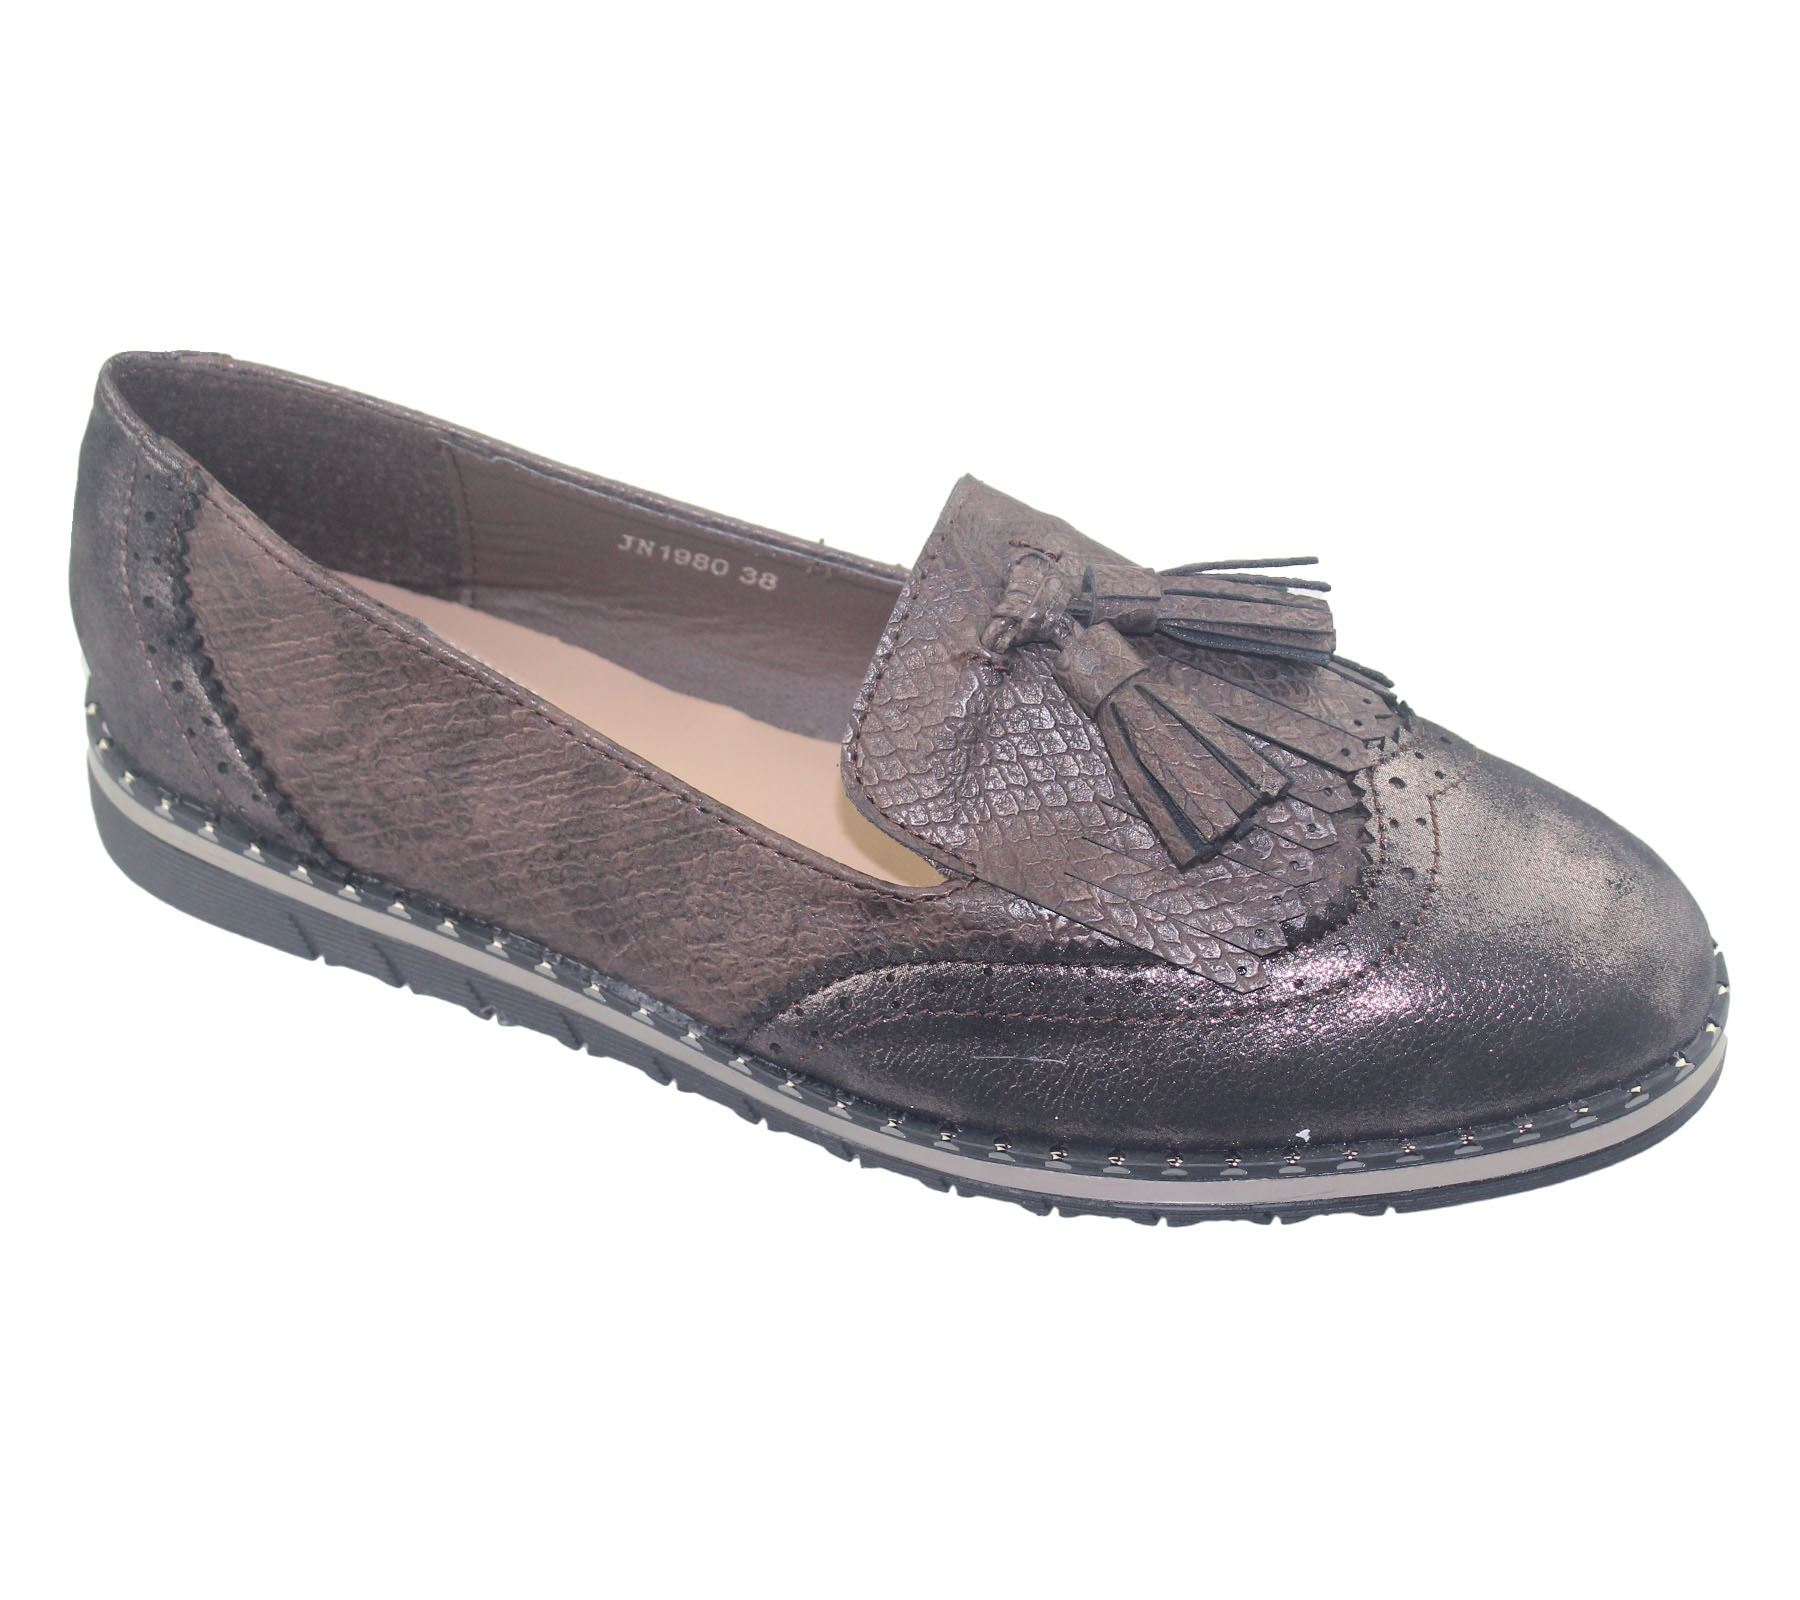 Women-Brogue-Shoes-Ladies-Tassel-Oxford-Office-Snack-Pattent-Loafers-Pumps thumbnail 11